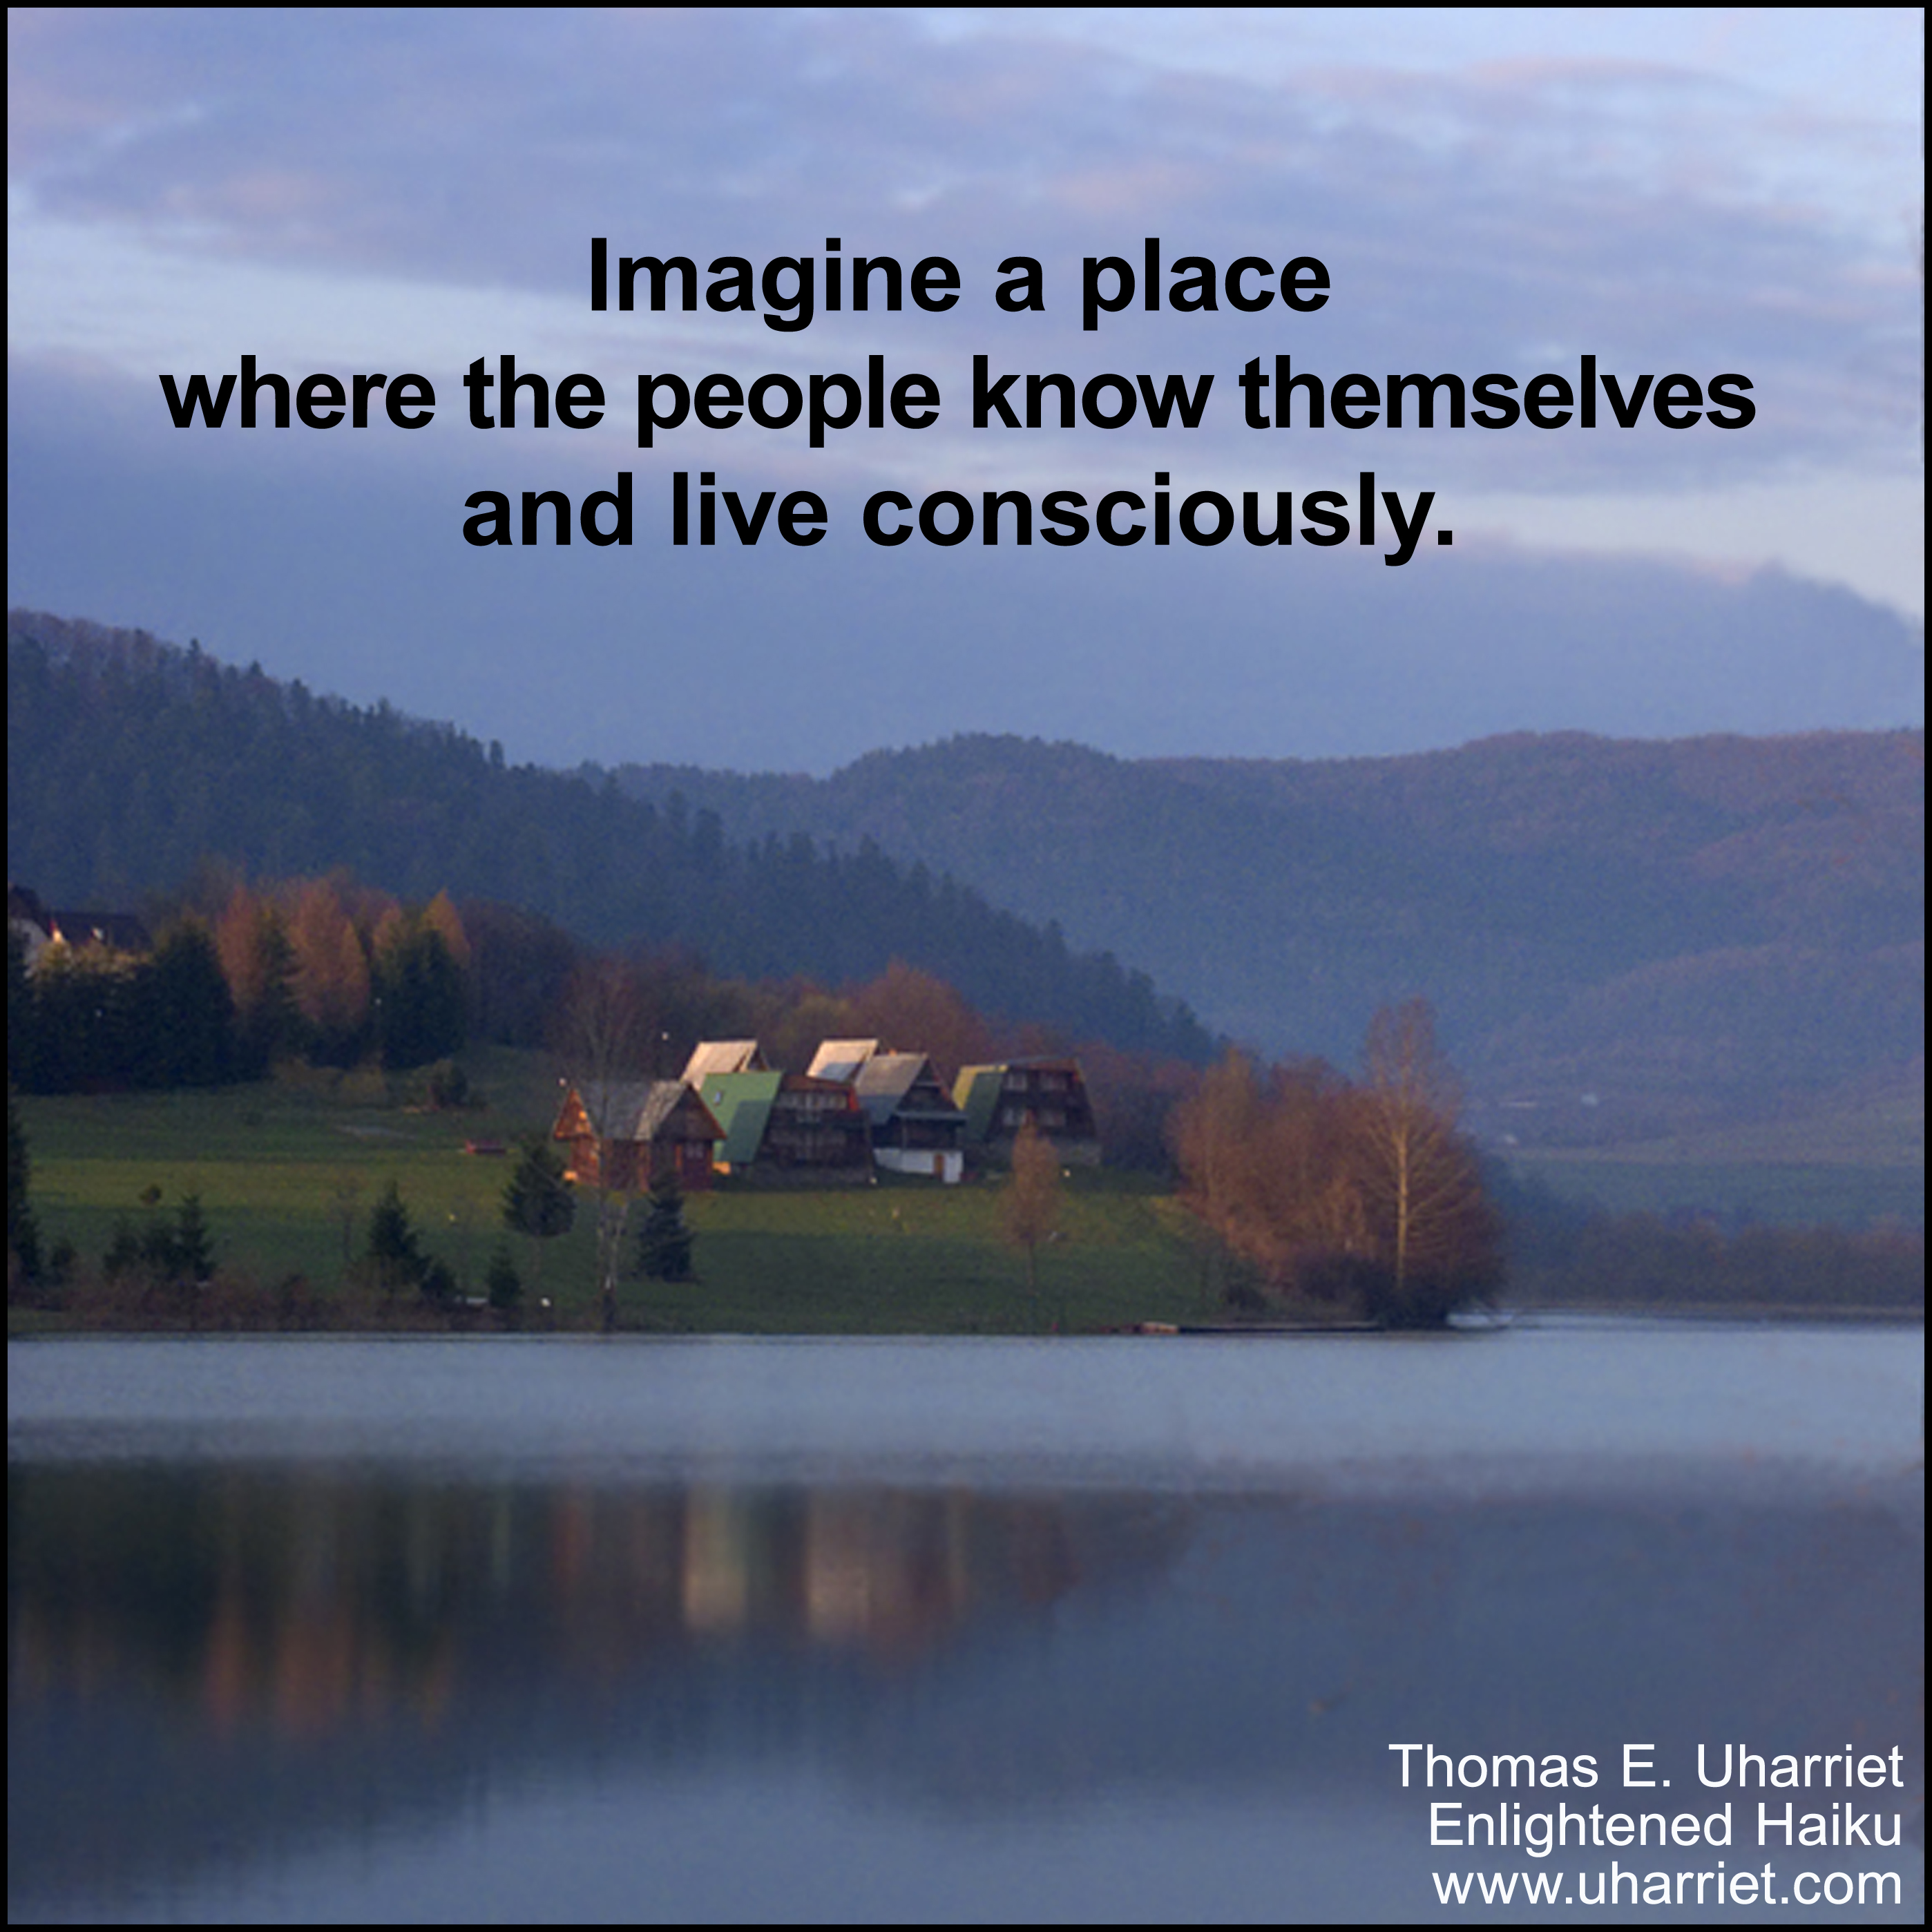 Imagine a place where people know themselves.